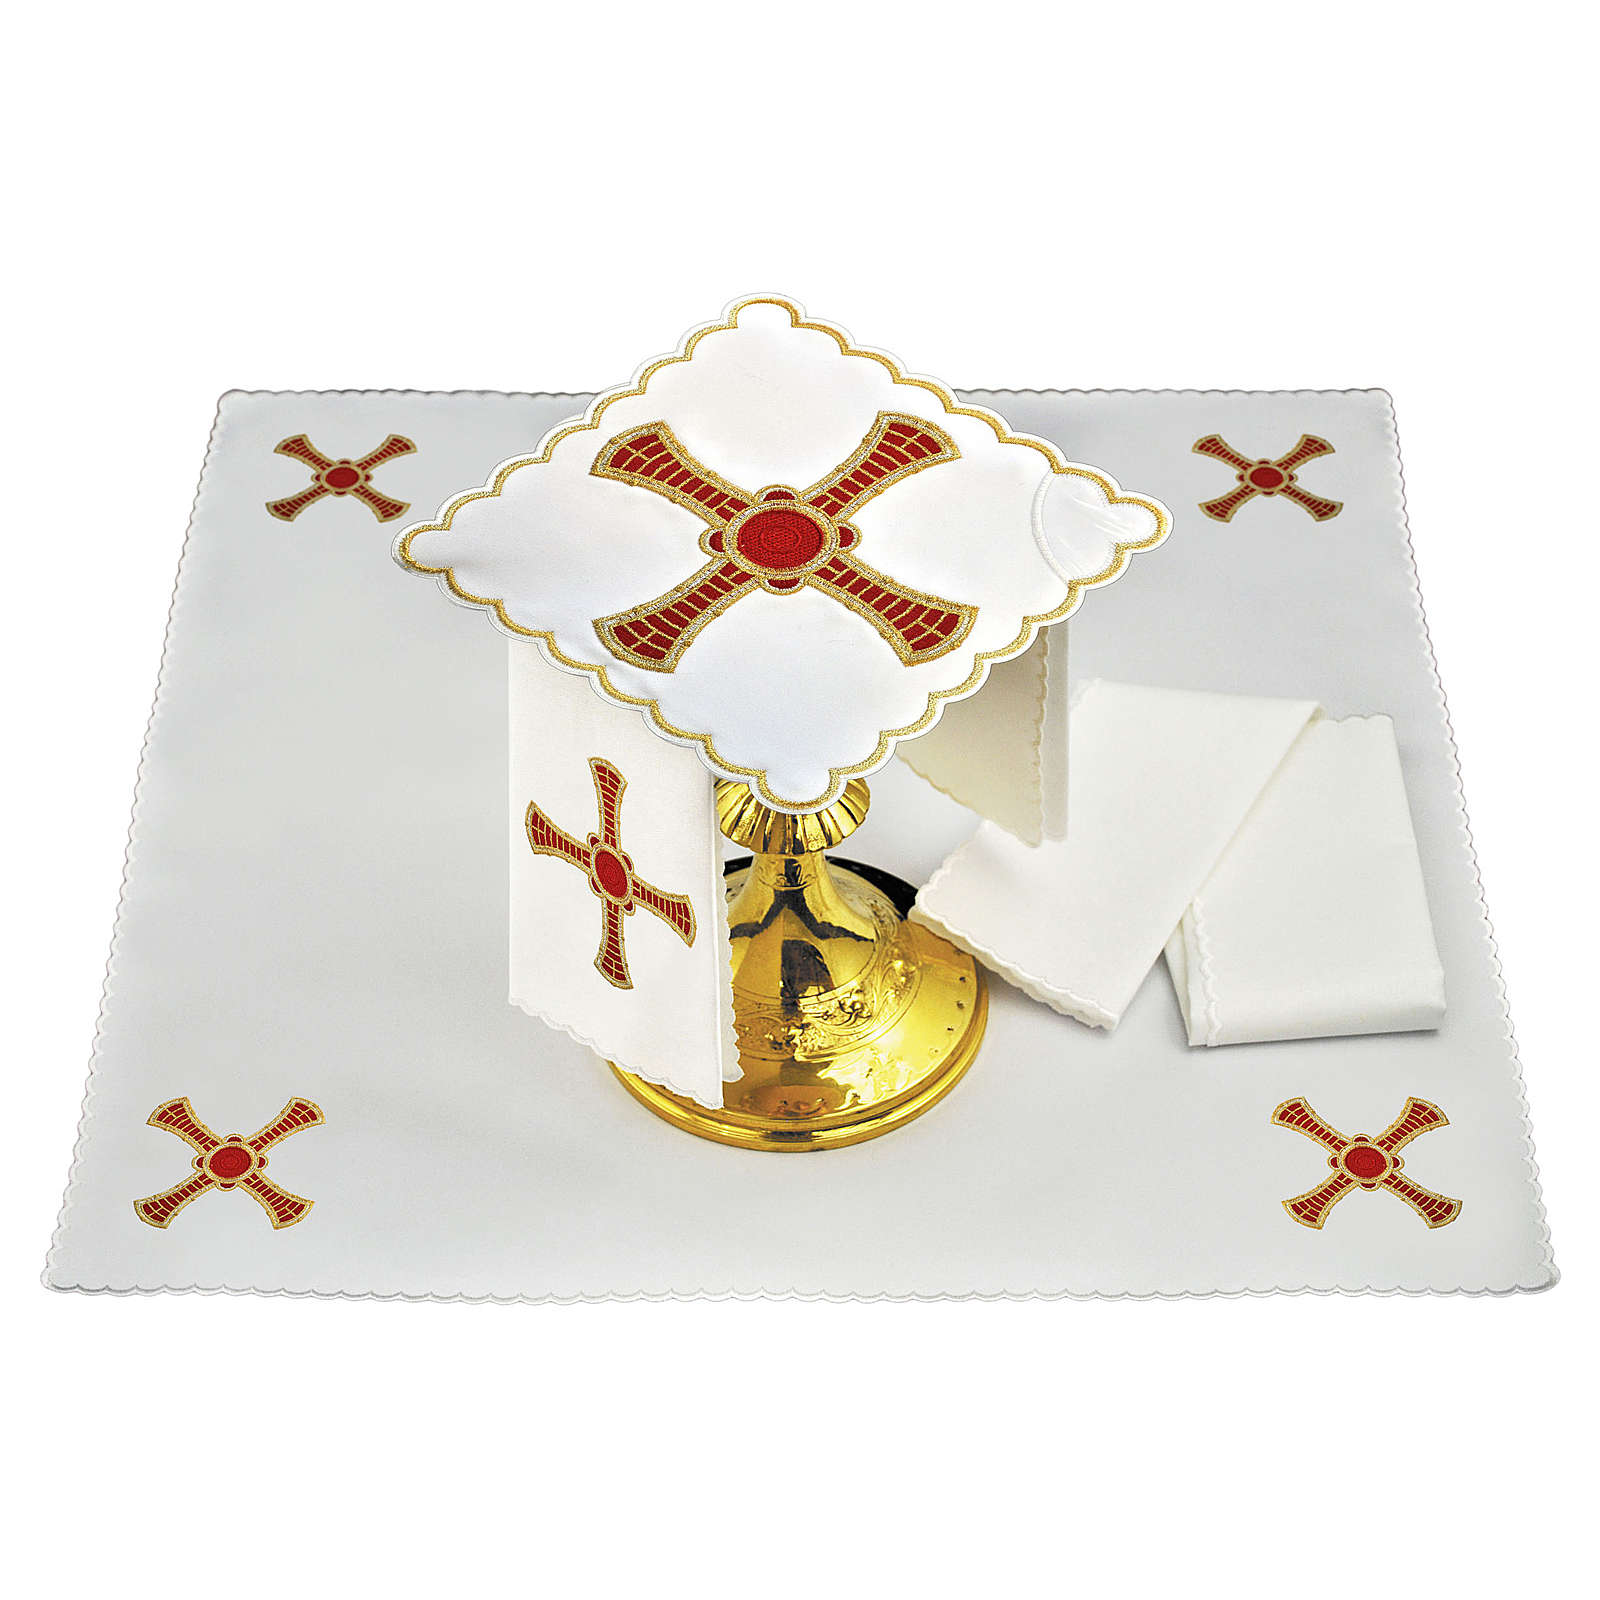 Altar linen red and gold cross striped, cotton 4